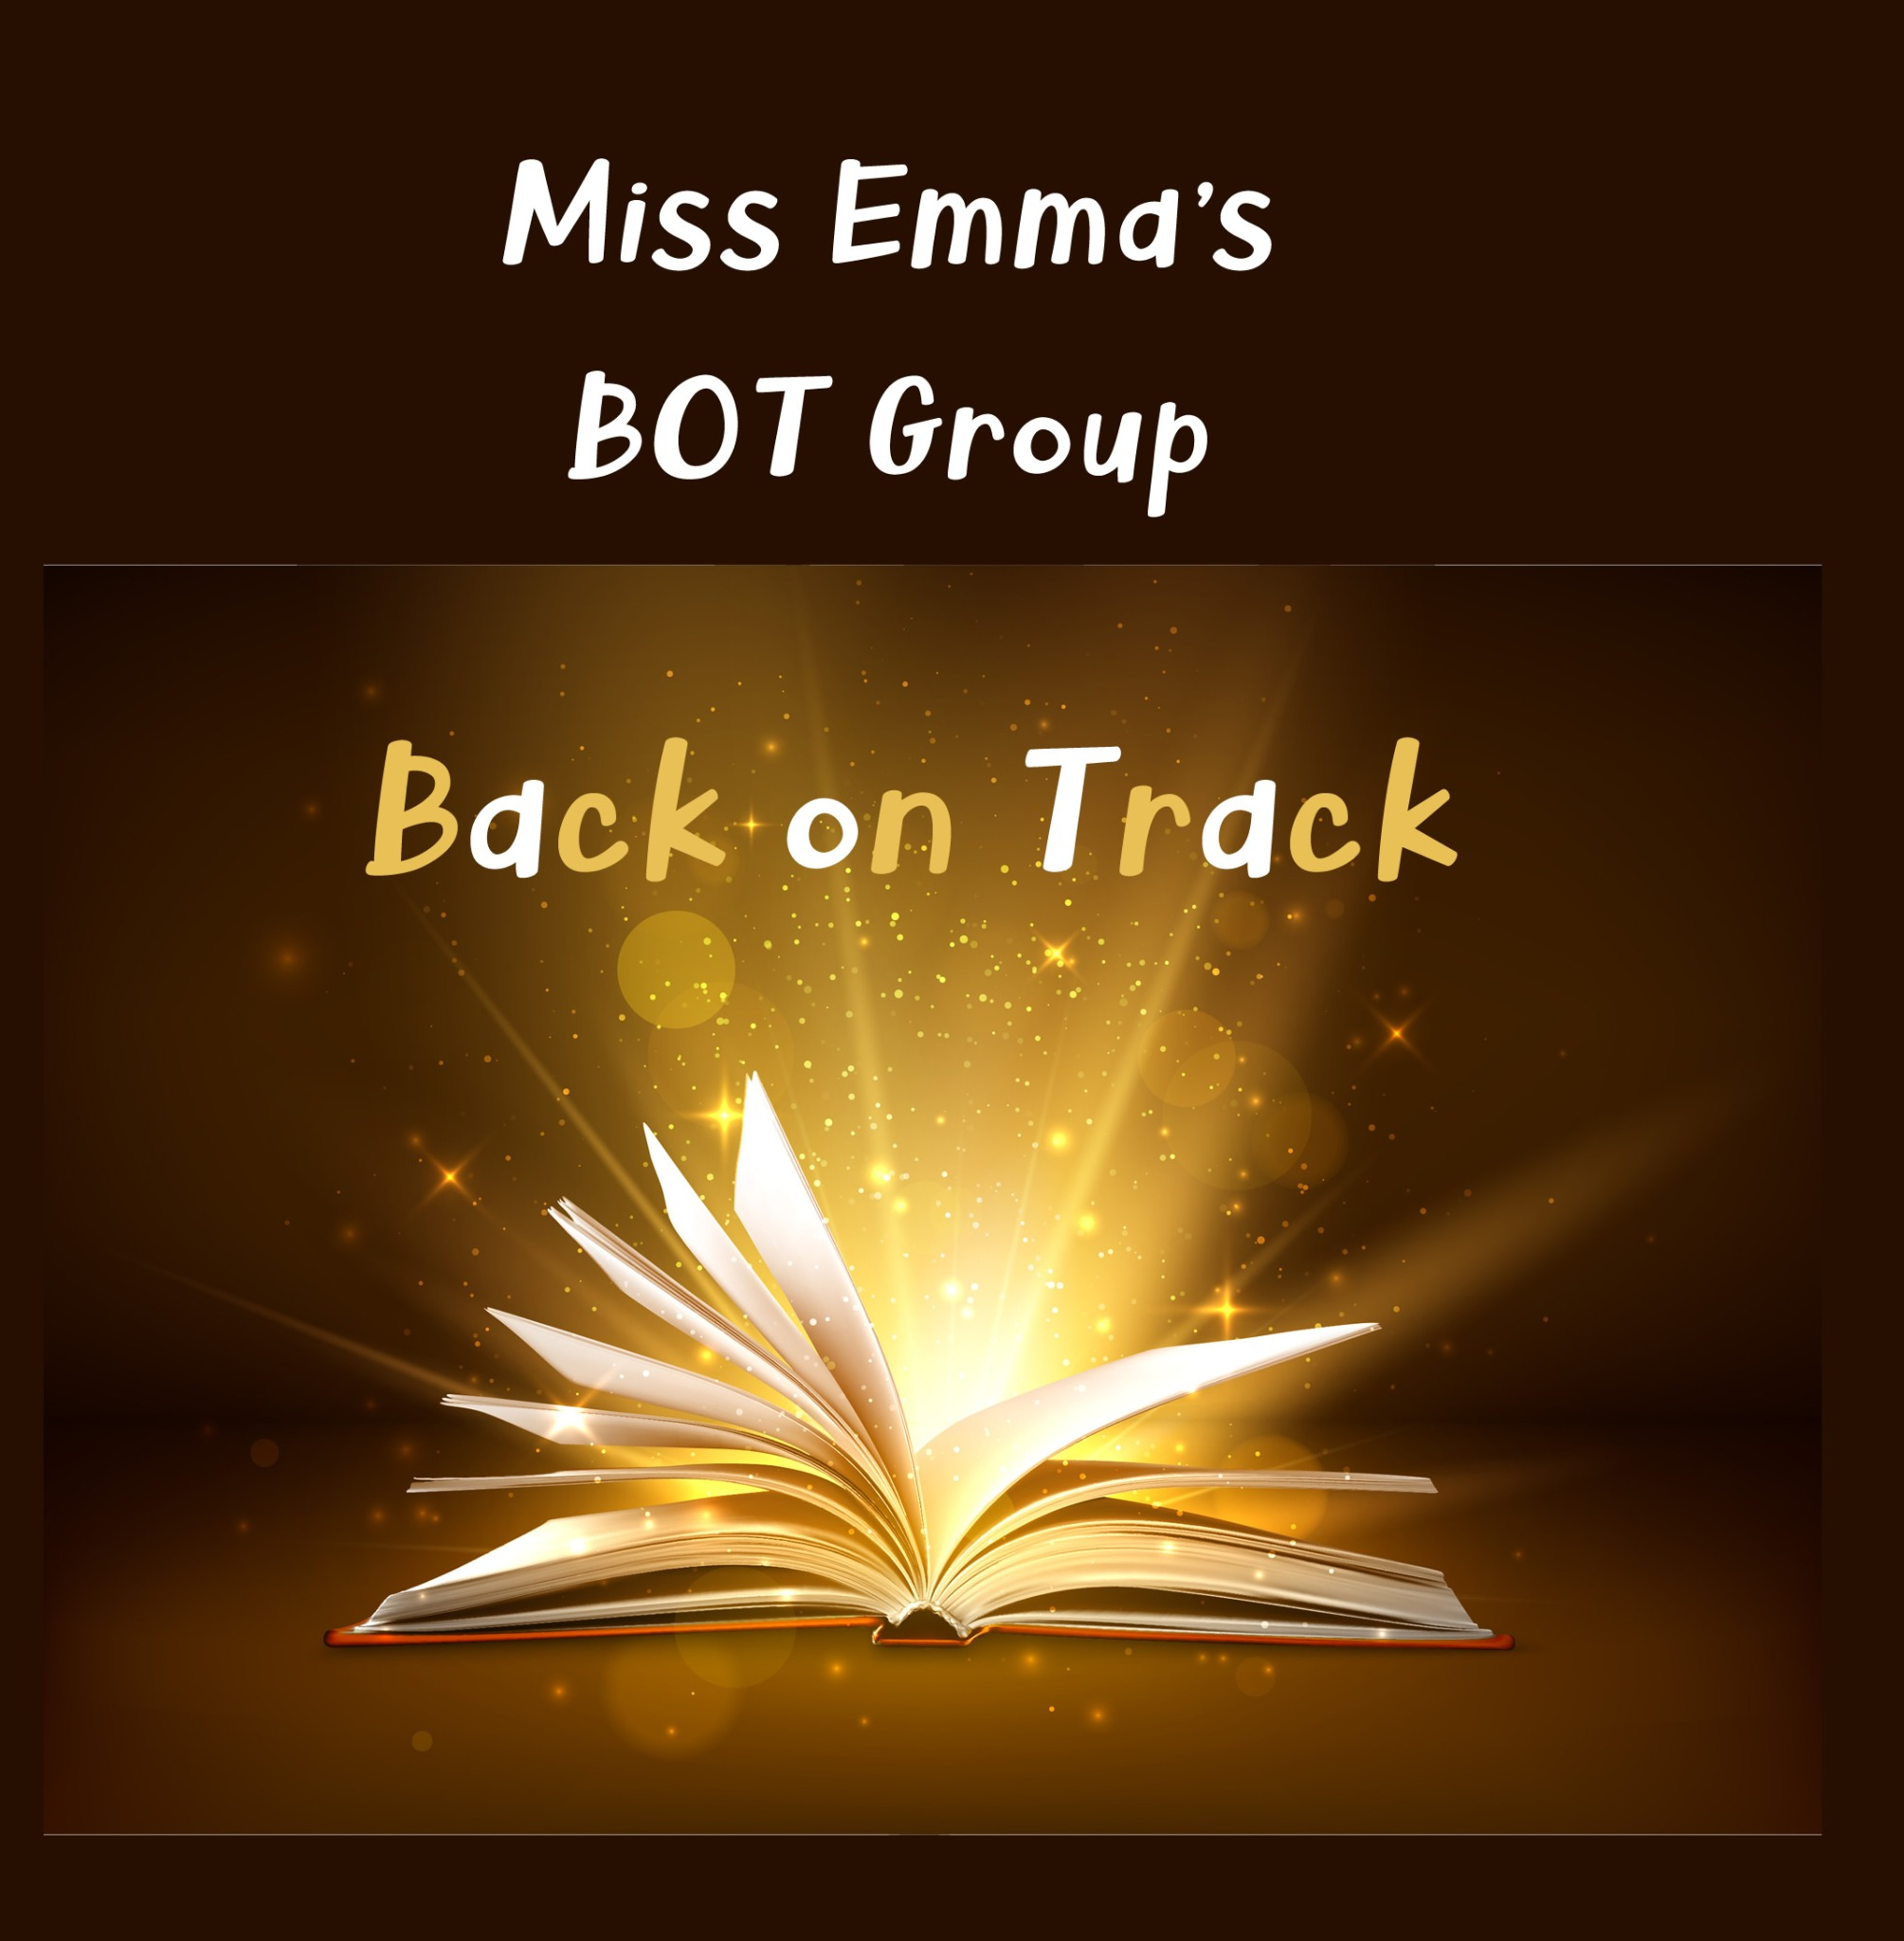 Assessment with Miss Emma and invitation to join the BOT Group (Back on Track)